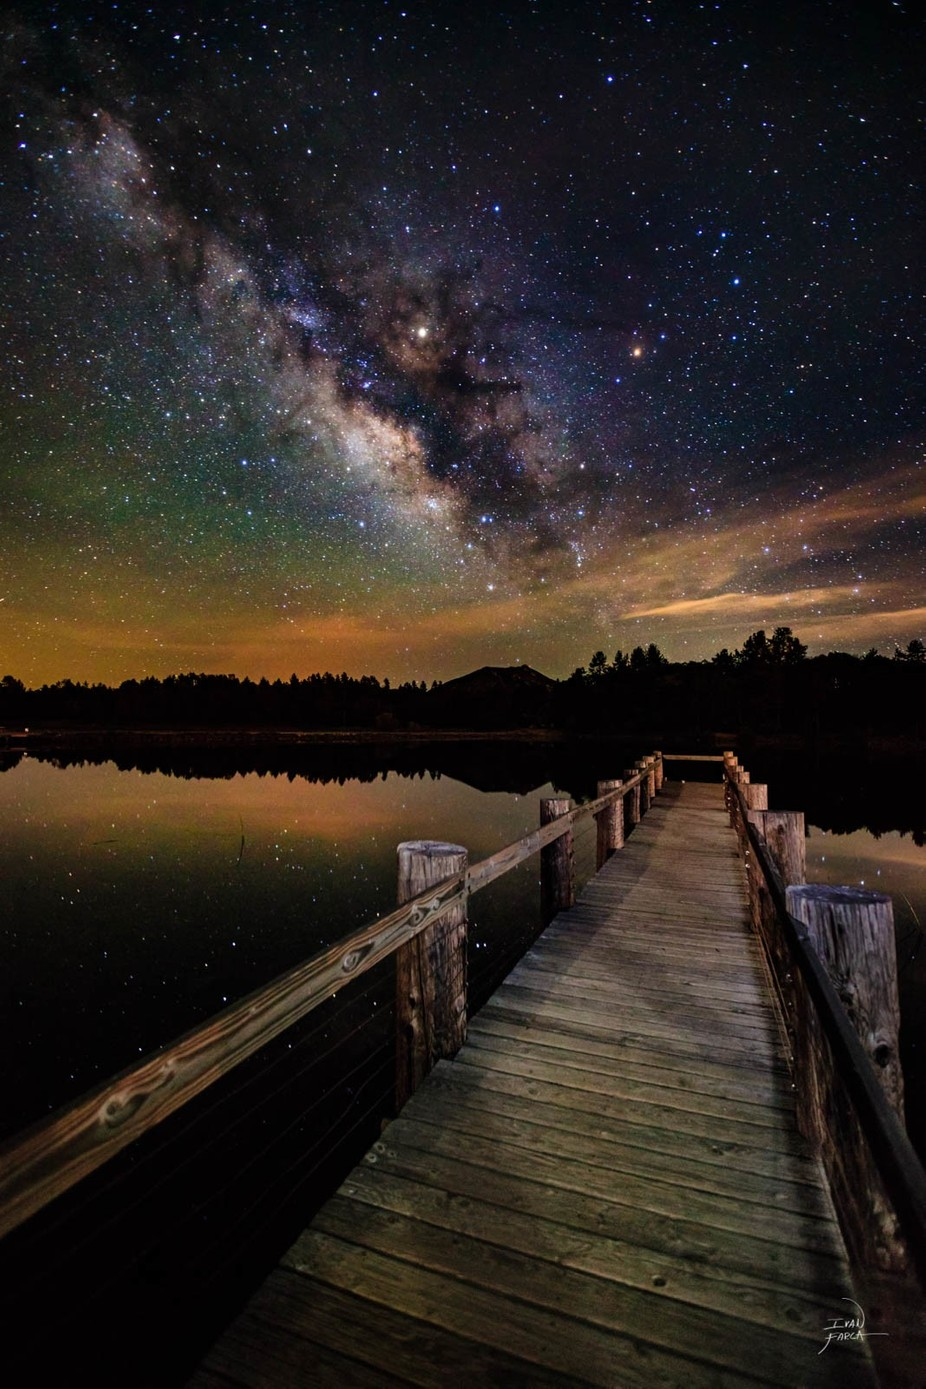 Celestial dock by ifarca - Promenades And Boardwalks Photo Contest